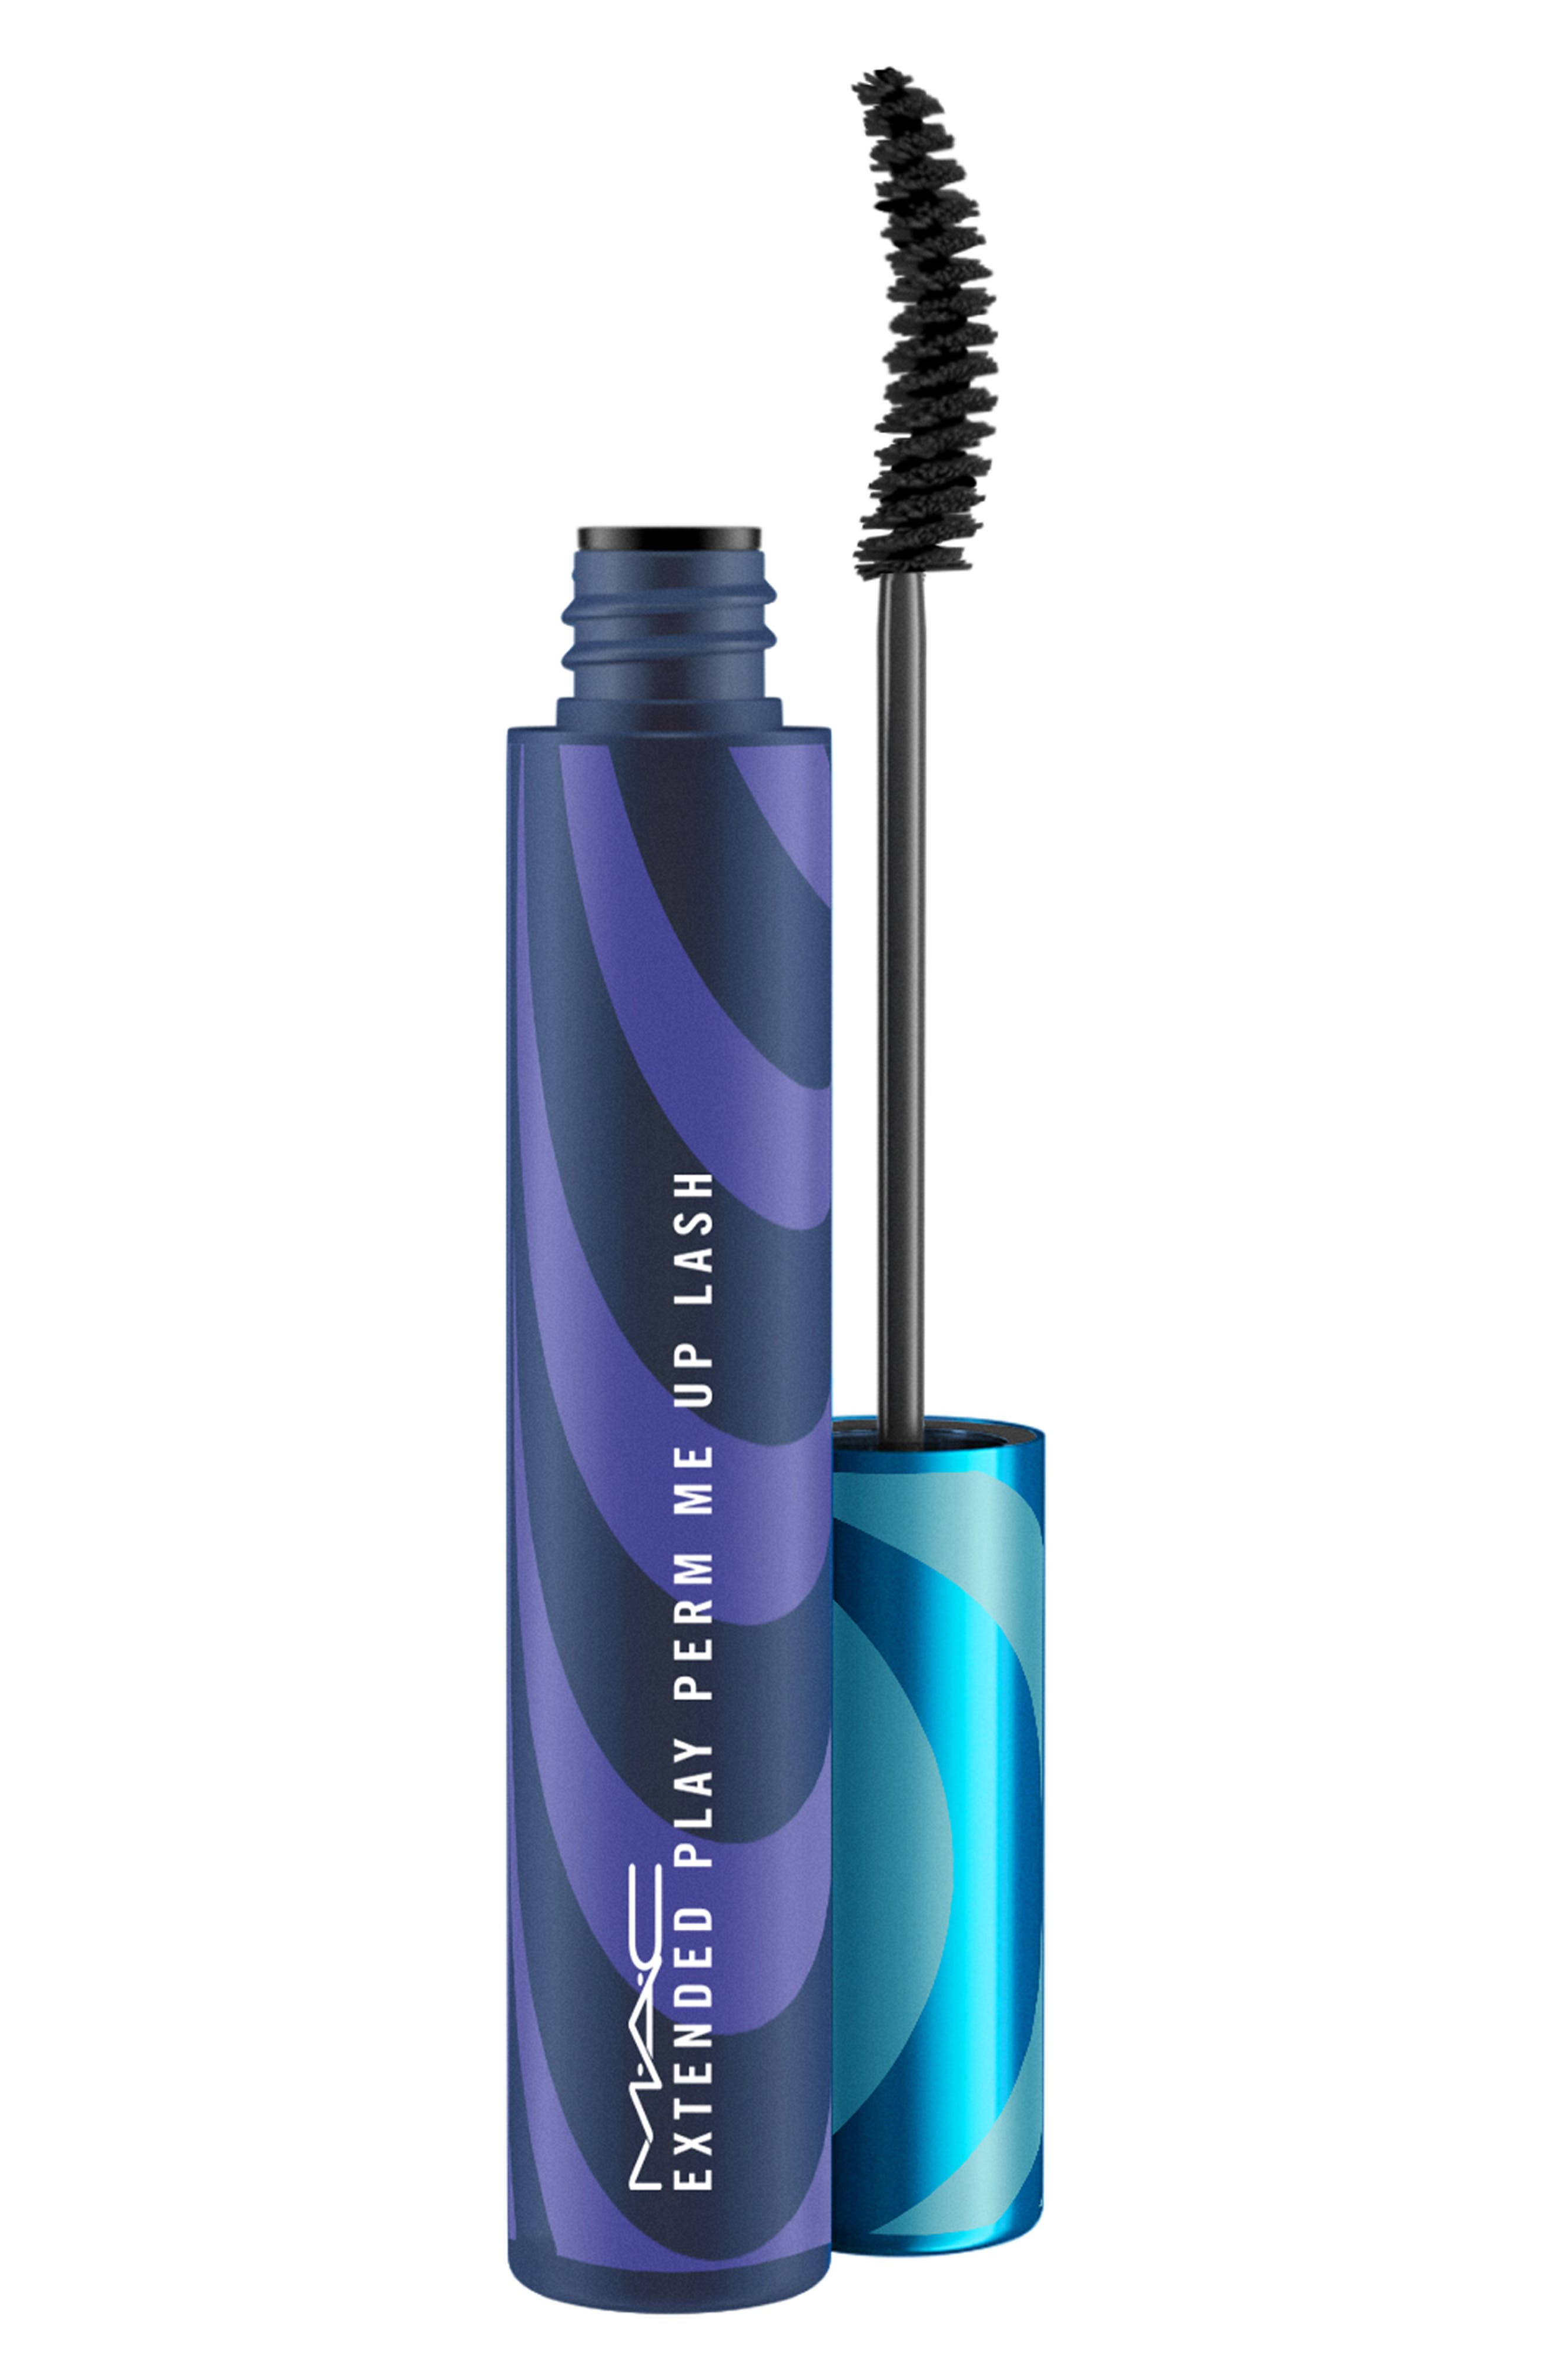 MAC Extended Play Perm Me Up Lash Mascara | Nordstrom